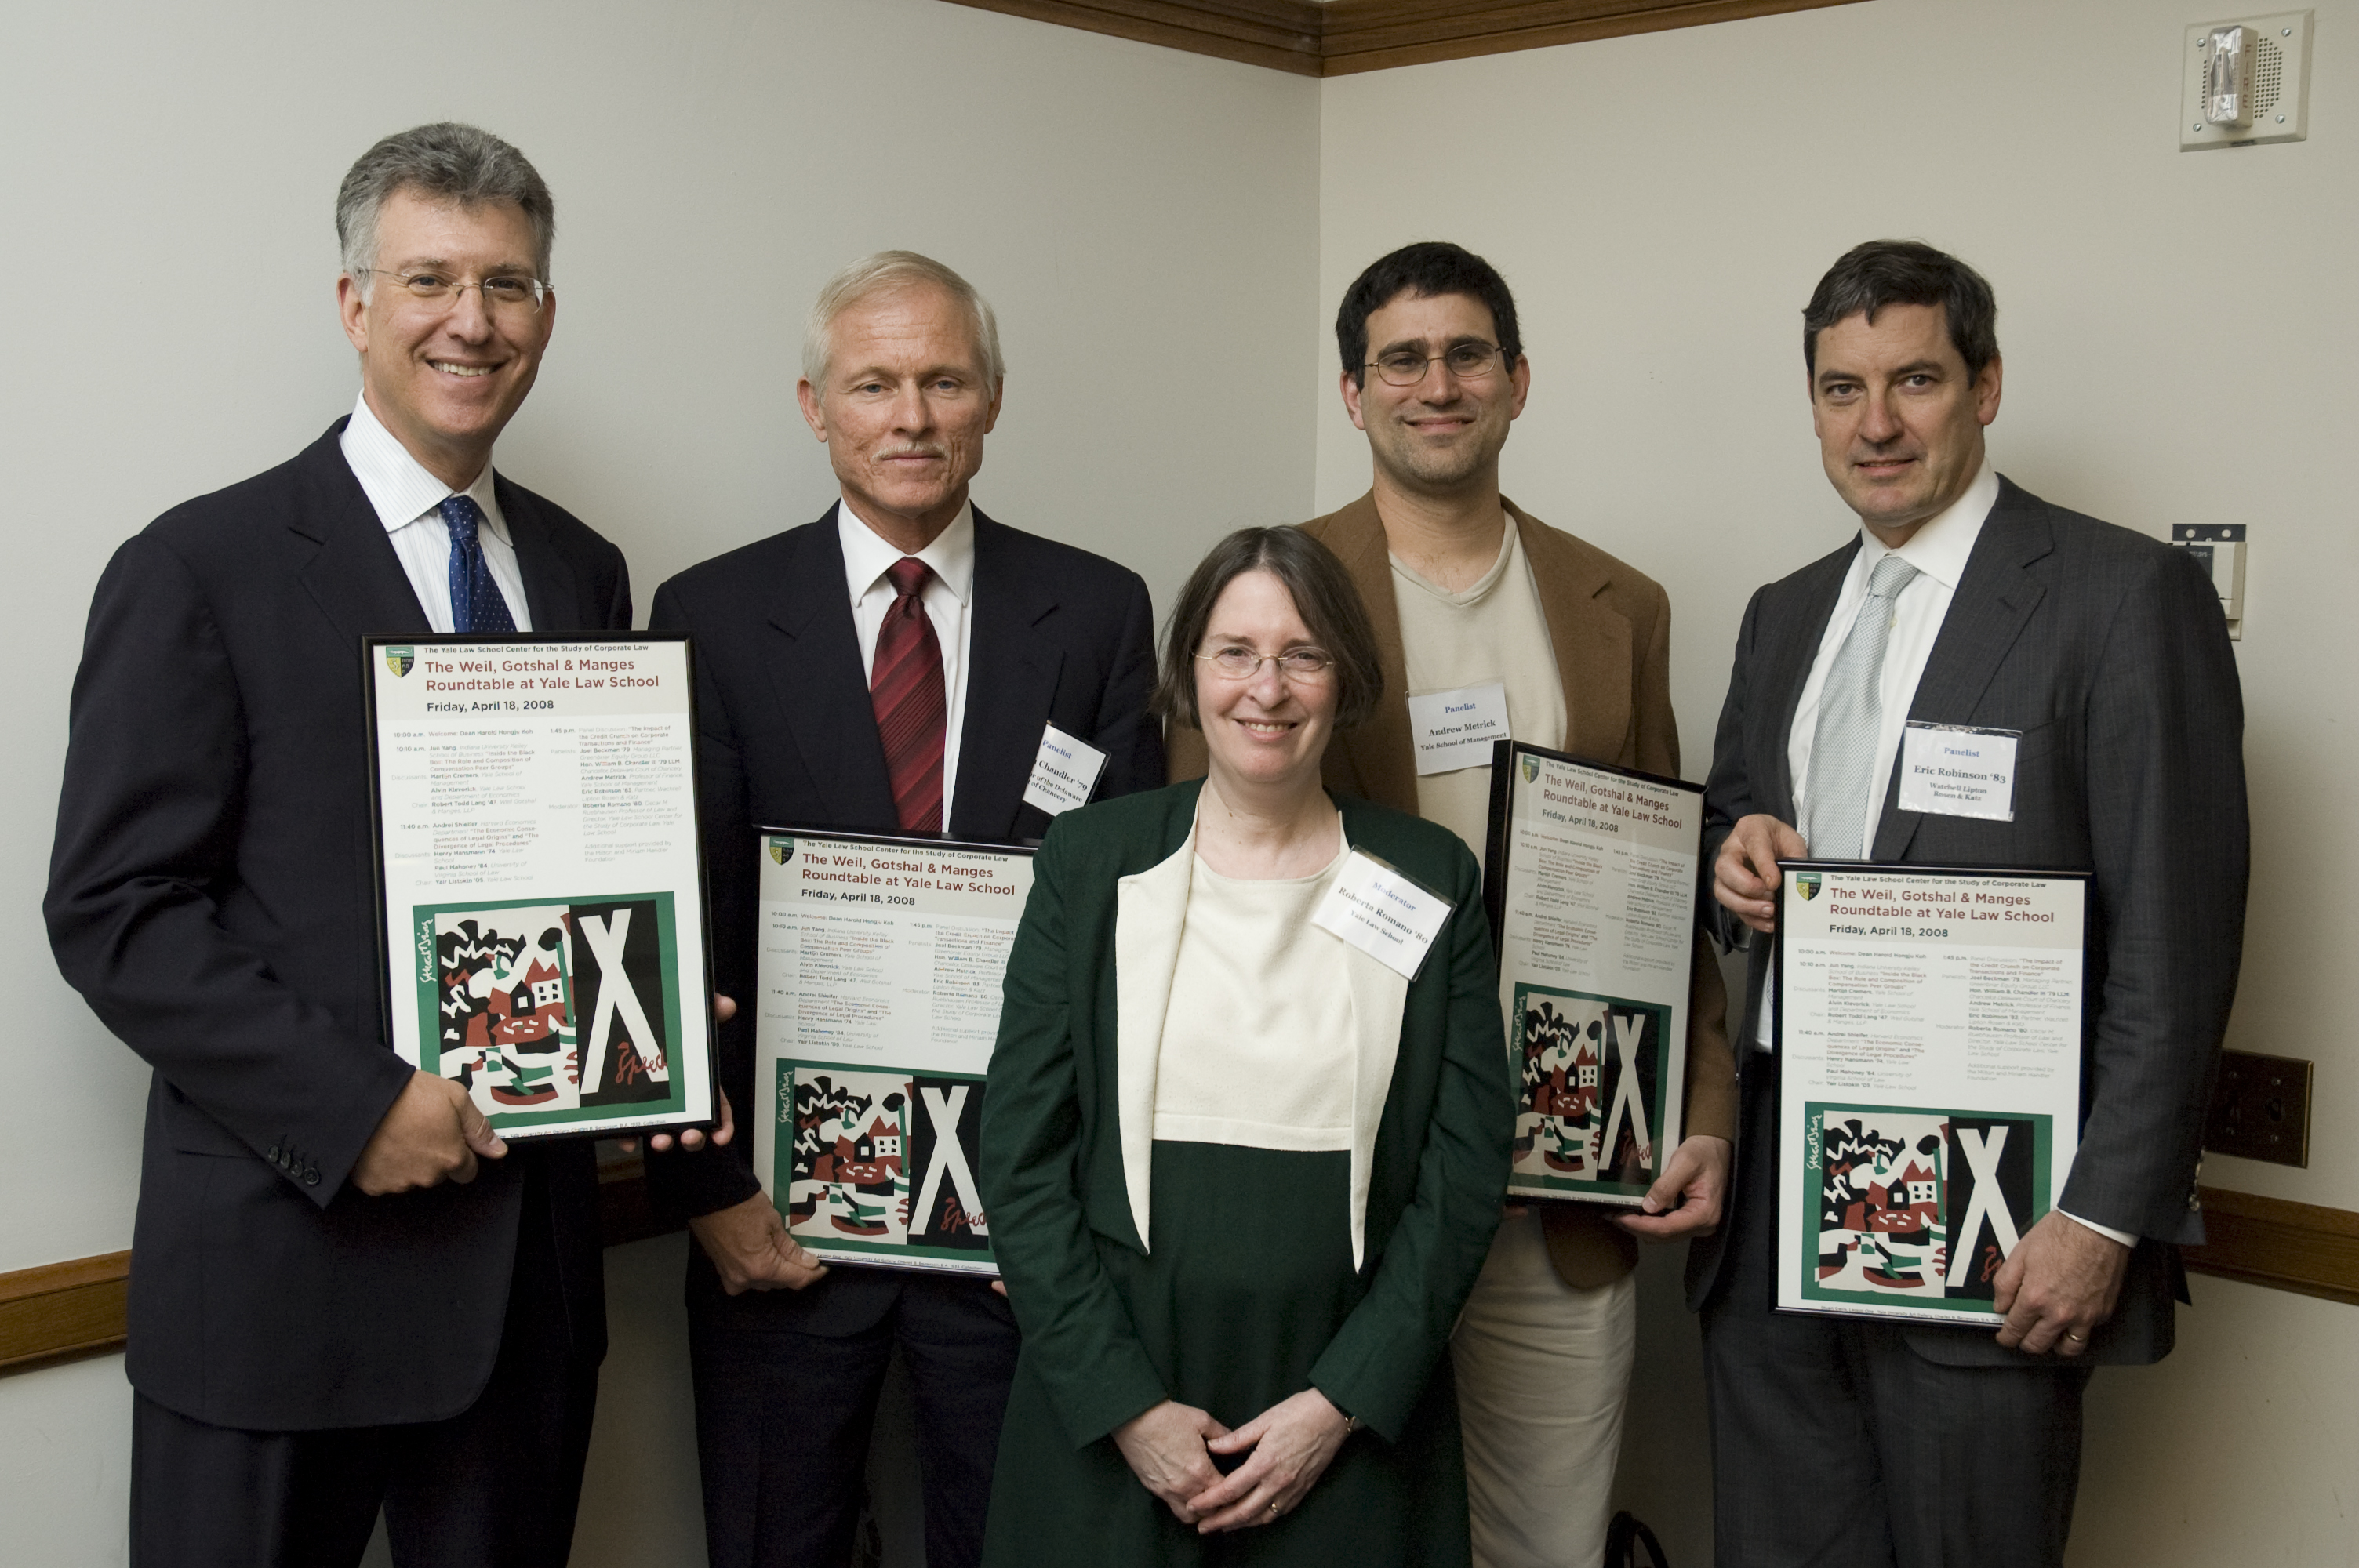 Joel Beckman '79, Hon. William Chandler LLM '79, YLS Prof. and Center Dir. Roberta Romano '80, Yale SOM Prof. Andrew Metrick, and Eric Robinson '83